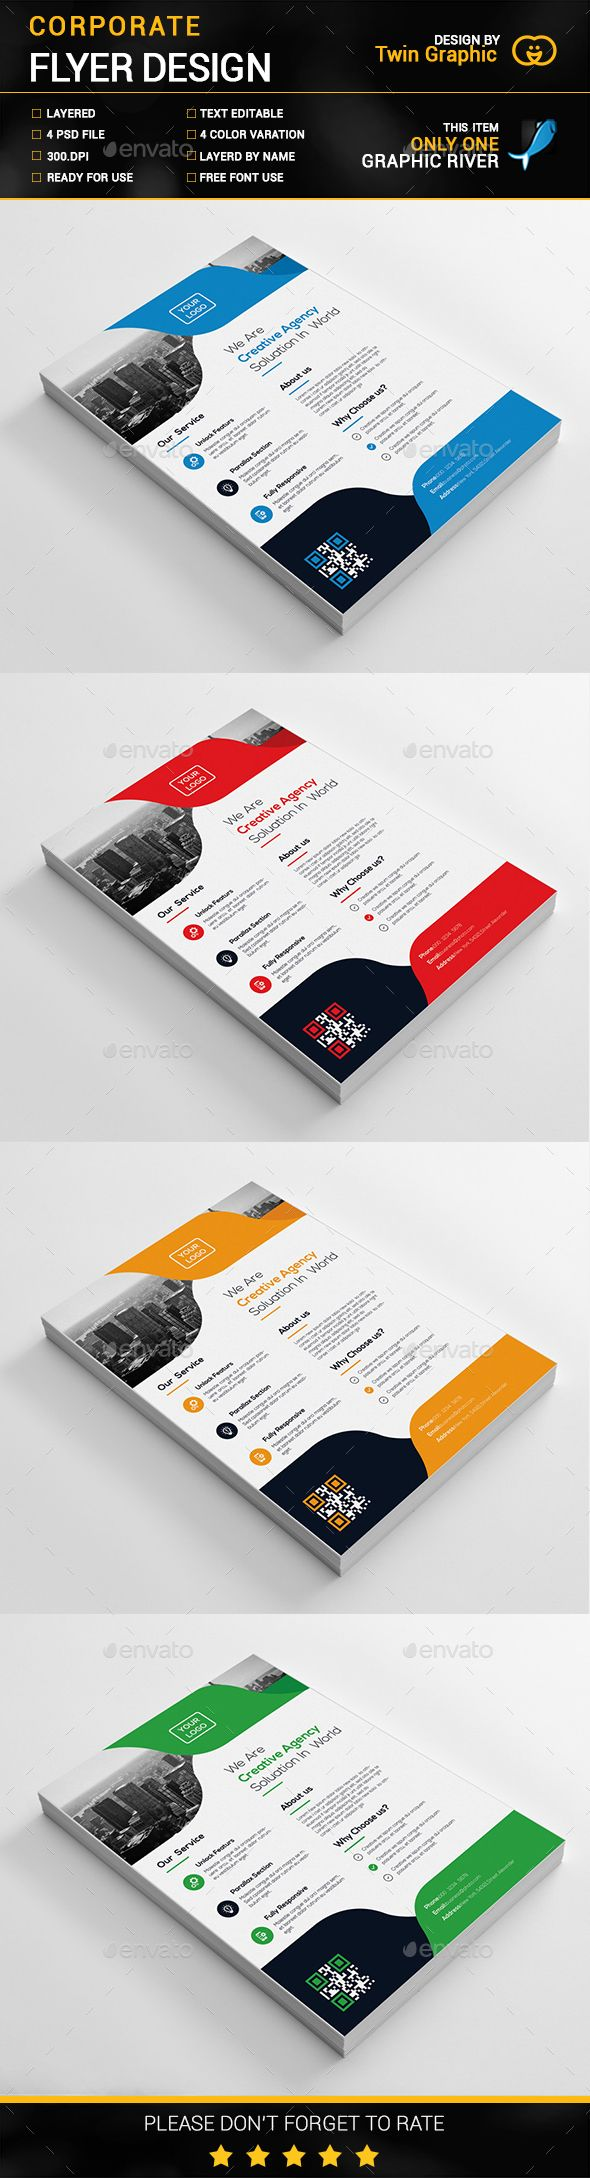 Corporate Flyer Design Template PSD. Download here: http://graphicriver.net/item/corporate-flyer-design/16367160?ref=ksioks